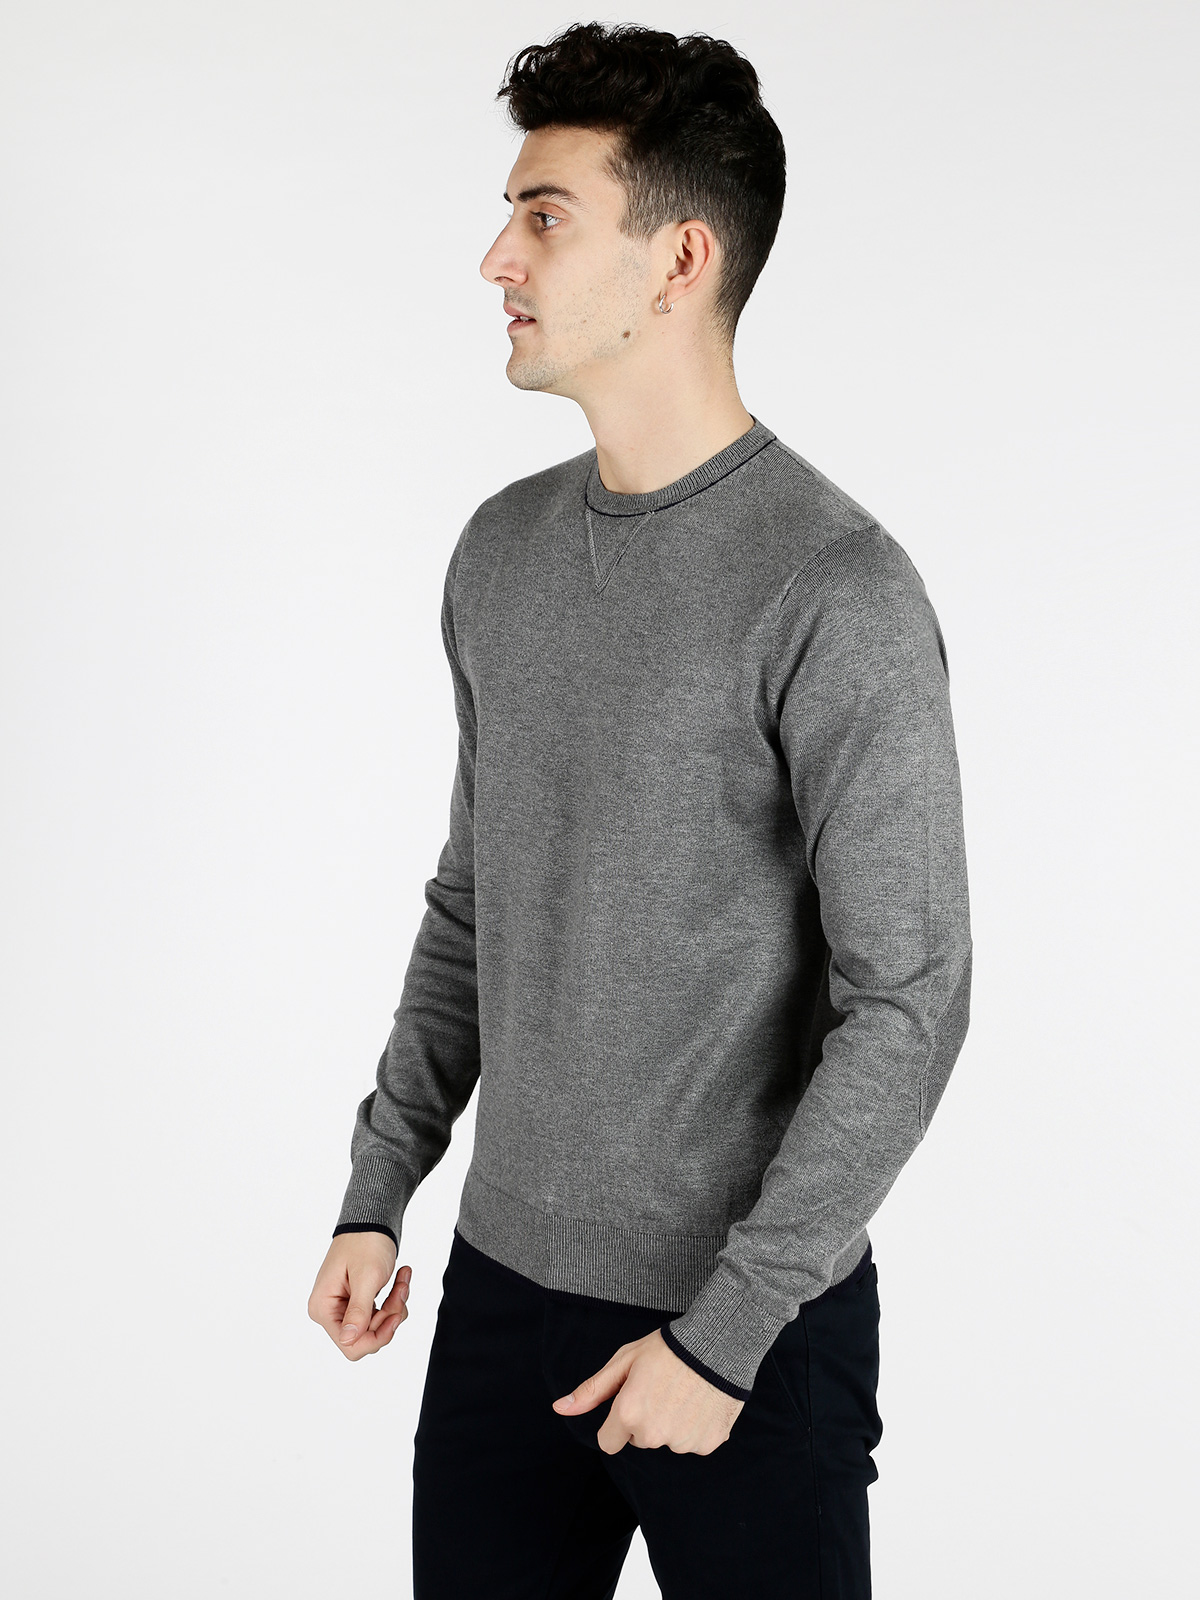 Pullover Crew Neck Elbow Patches